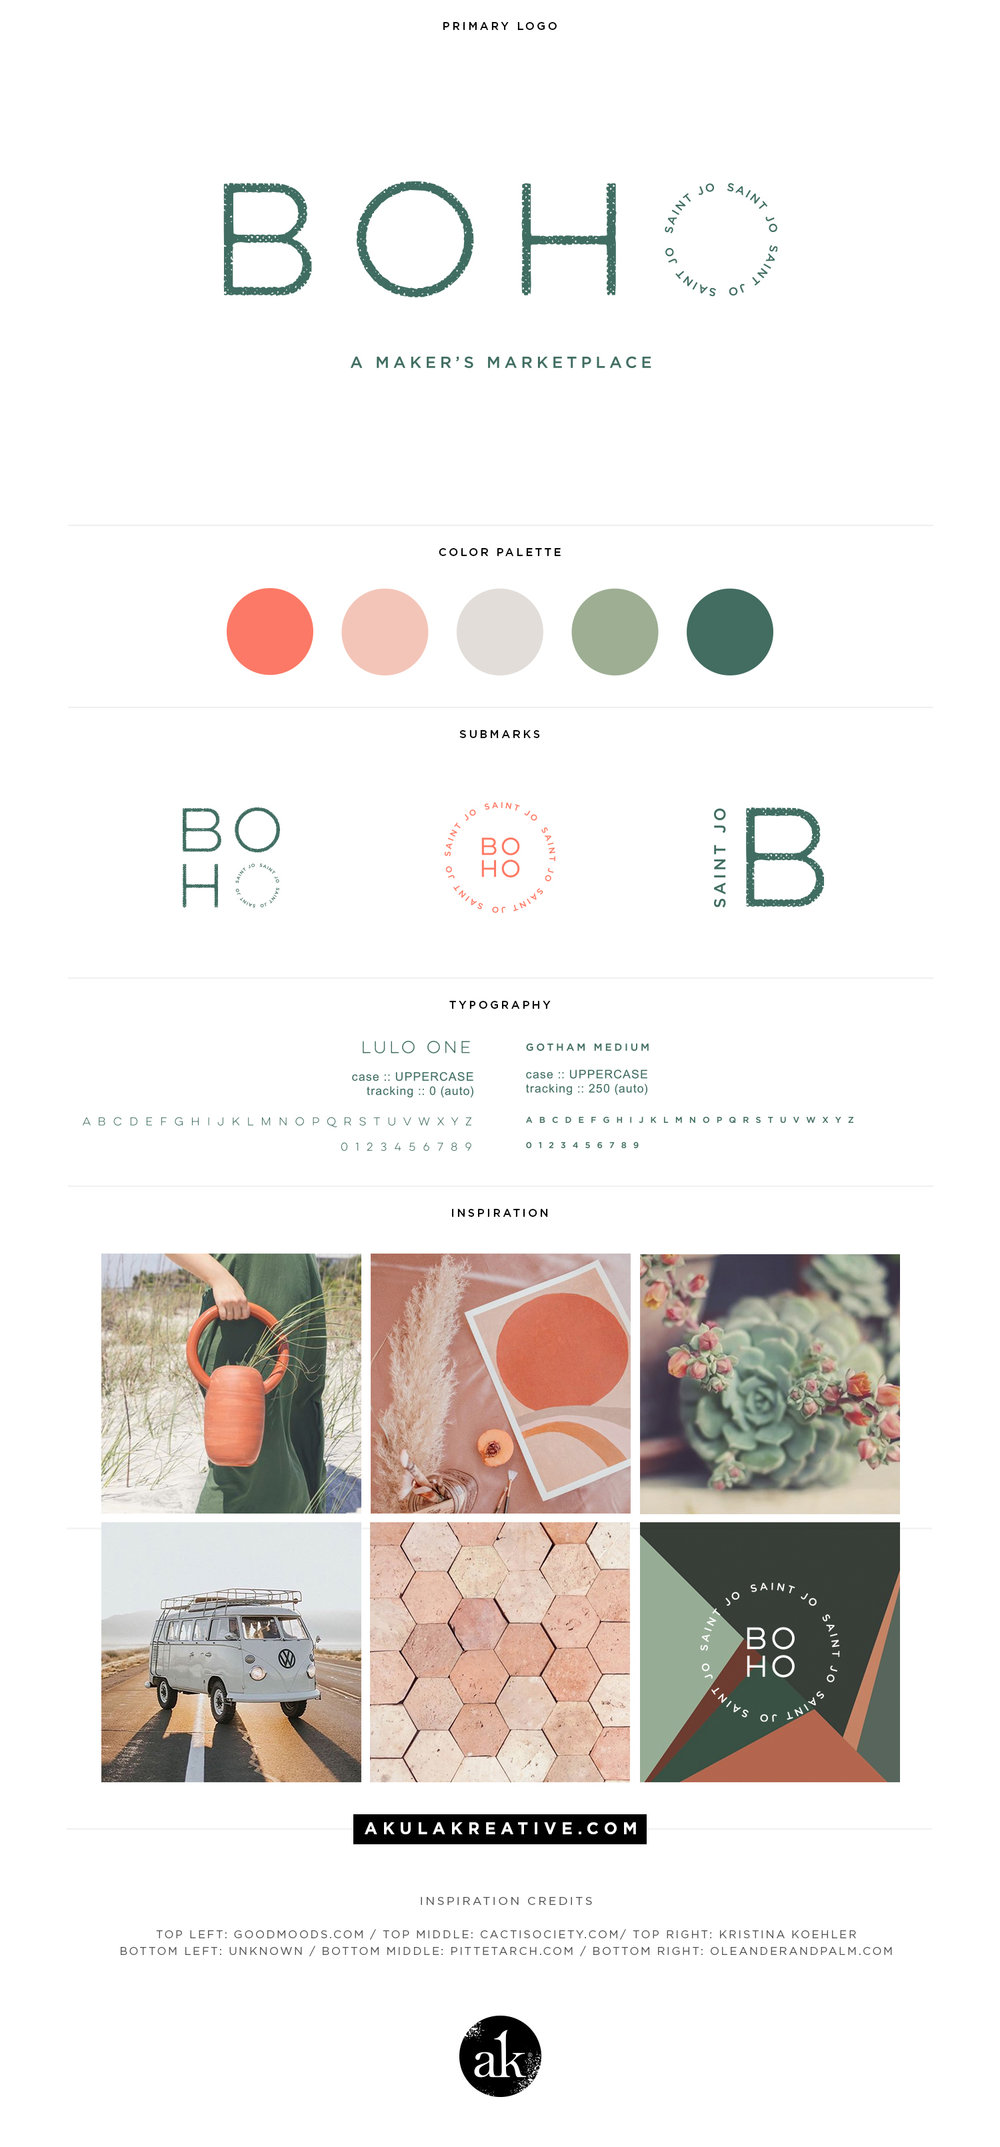 Boho-Inspired Branding in Warm Earth Tones for Boho Saint Jo by Akula Kreative | akulakreative.com